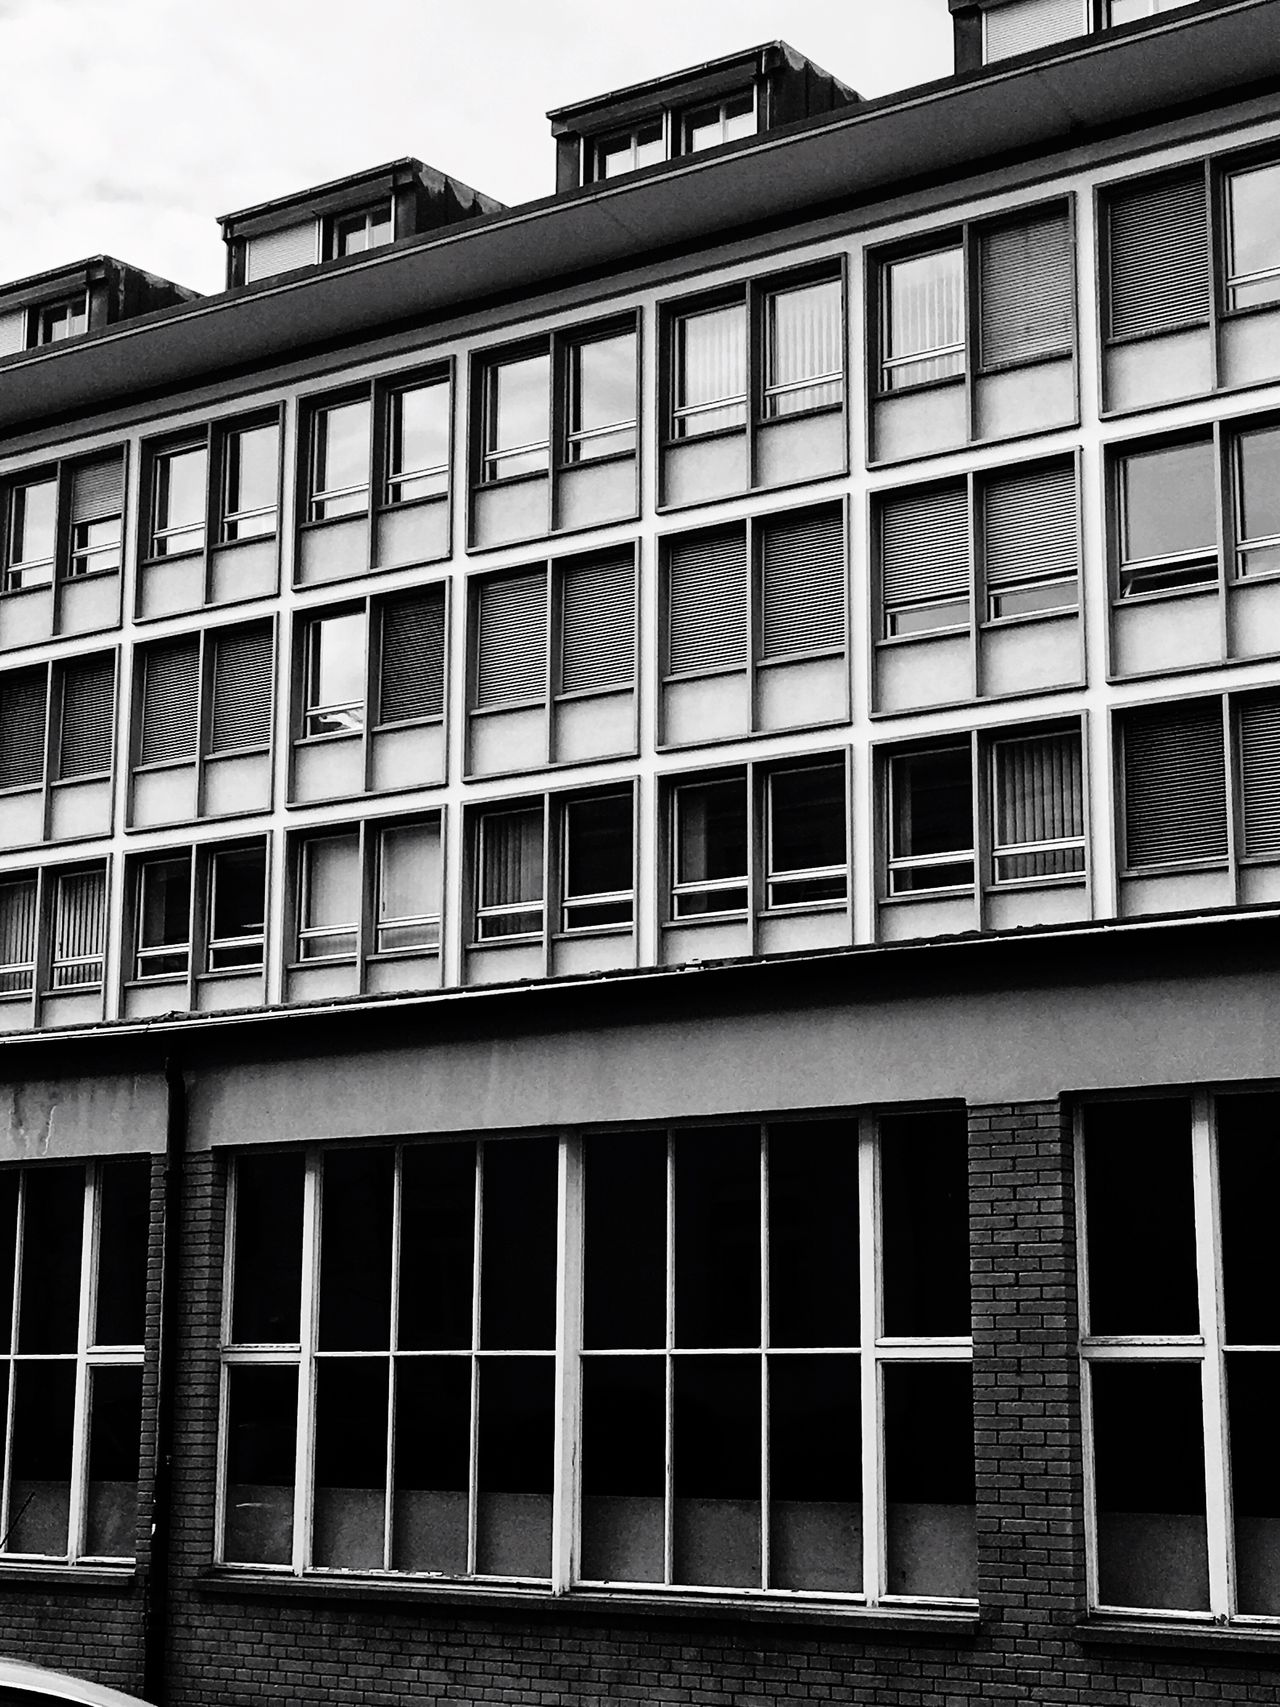 Building Exterior Architecture Built Structure Window Low Angle View No People Outdoors Day City Fire Escape EyeEmNewHere EyeEm Best Shots EyeEm Gallery Shadow Blackandwhite Black & White EyeEm my first trys...